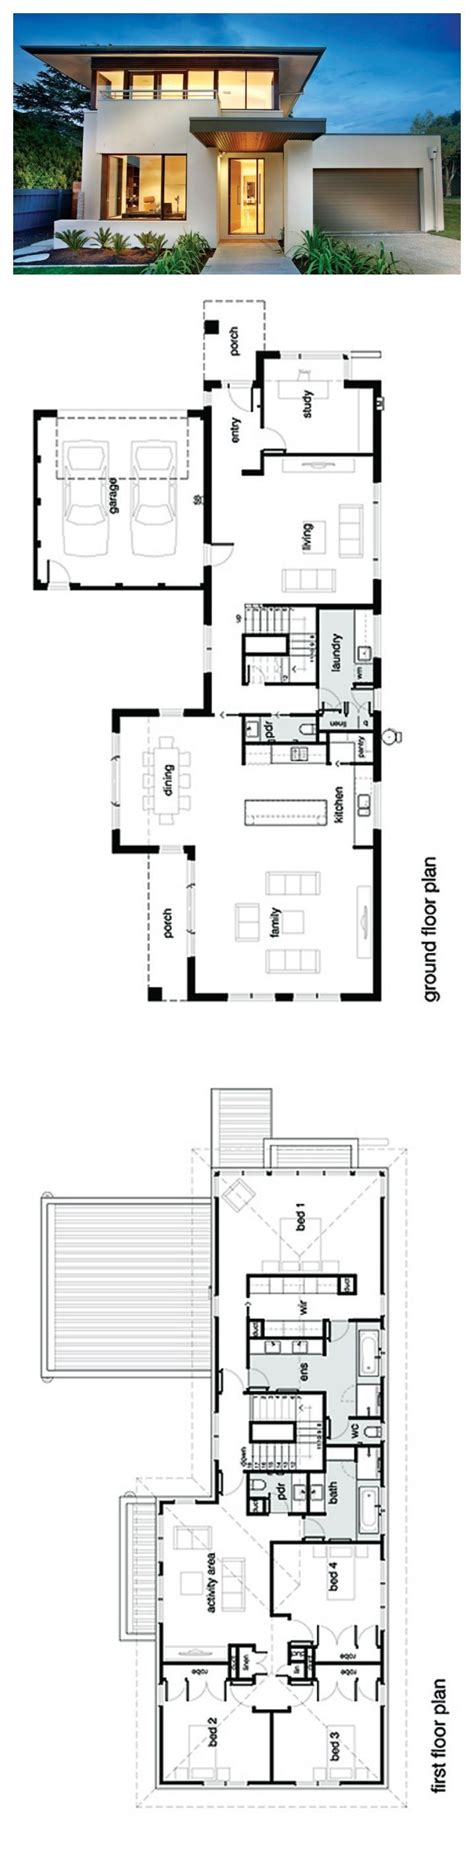 two storey residential building floor plan 4 storey residential building floor plan modern house